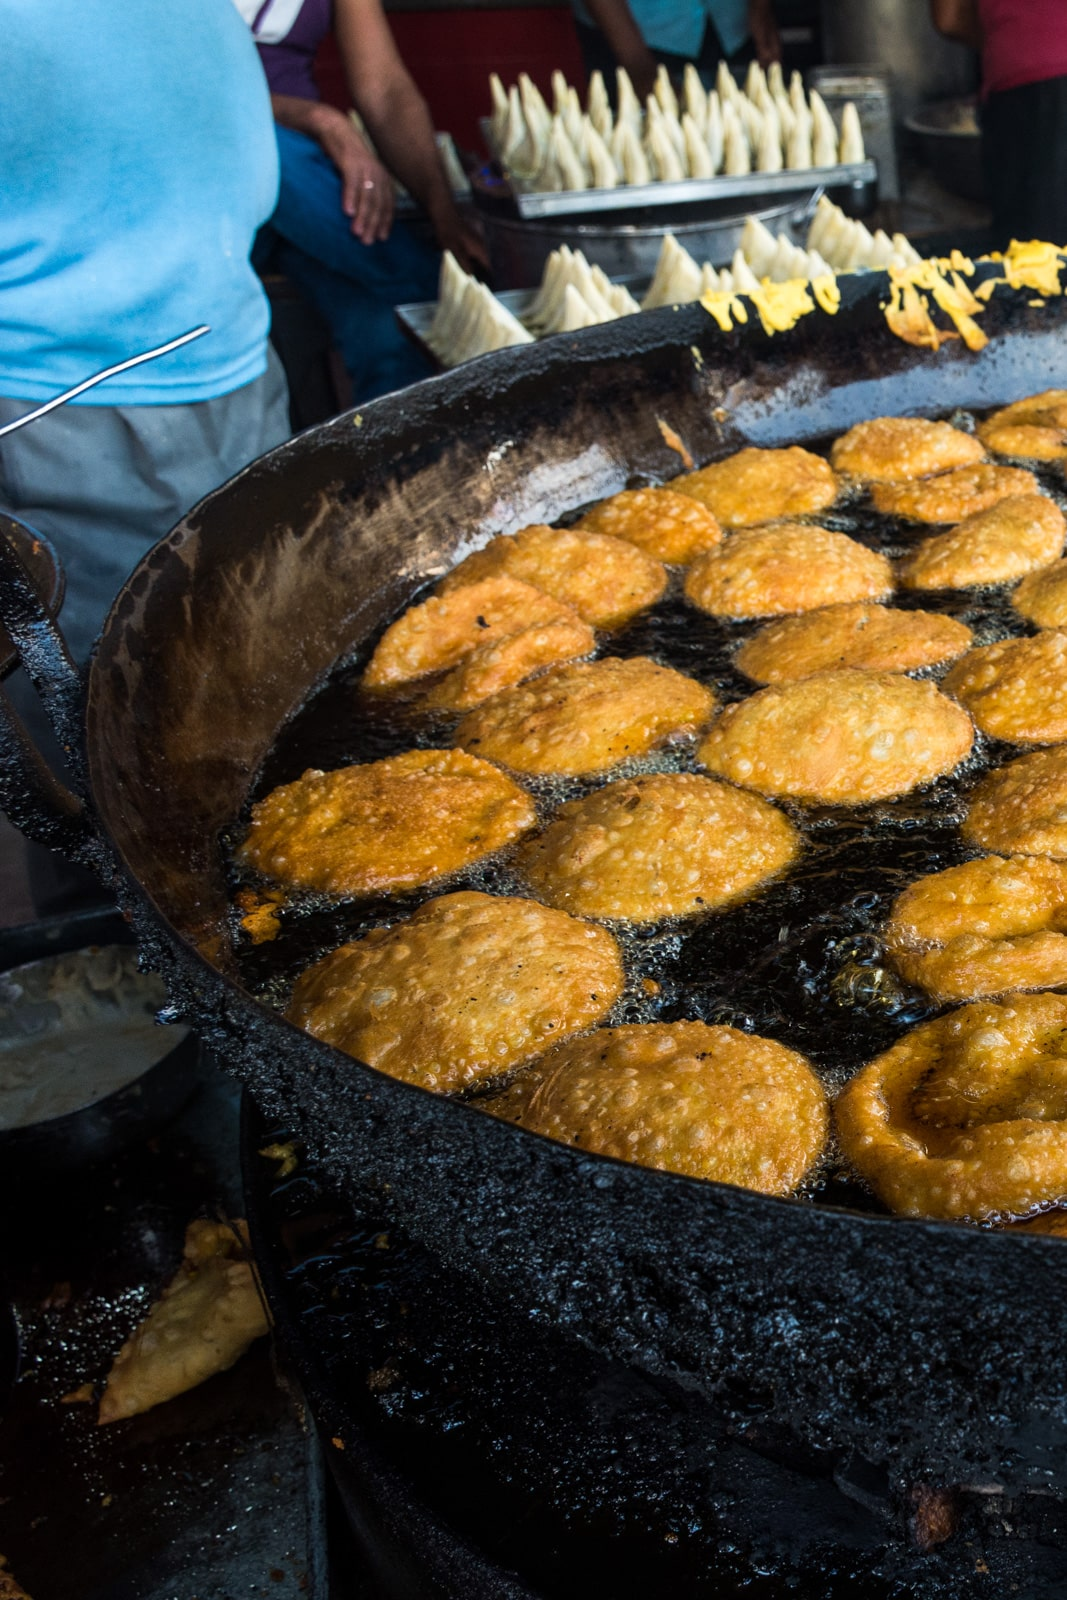 Why we fell in love with India - Fresh kachori deep frying in Jodhpur, Rajasthan state, India - Lost With Purpose travel blog